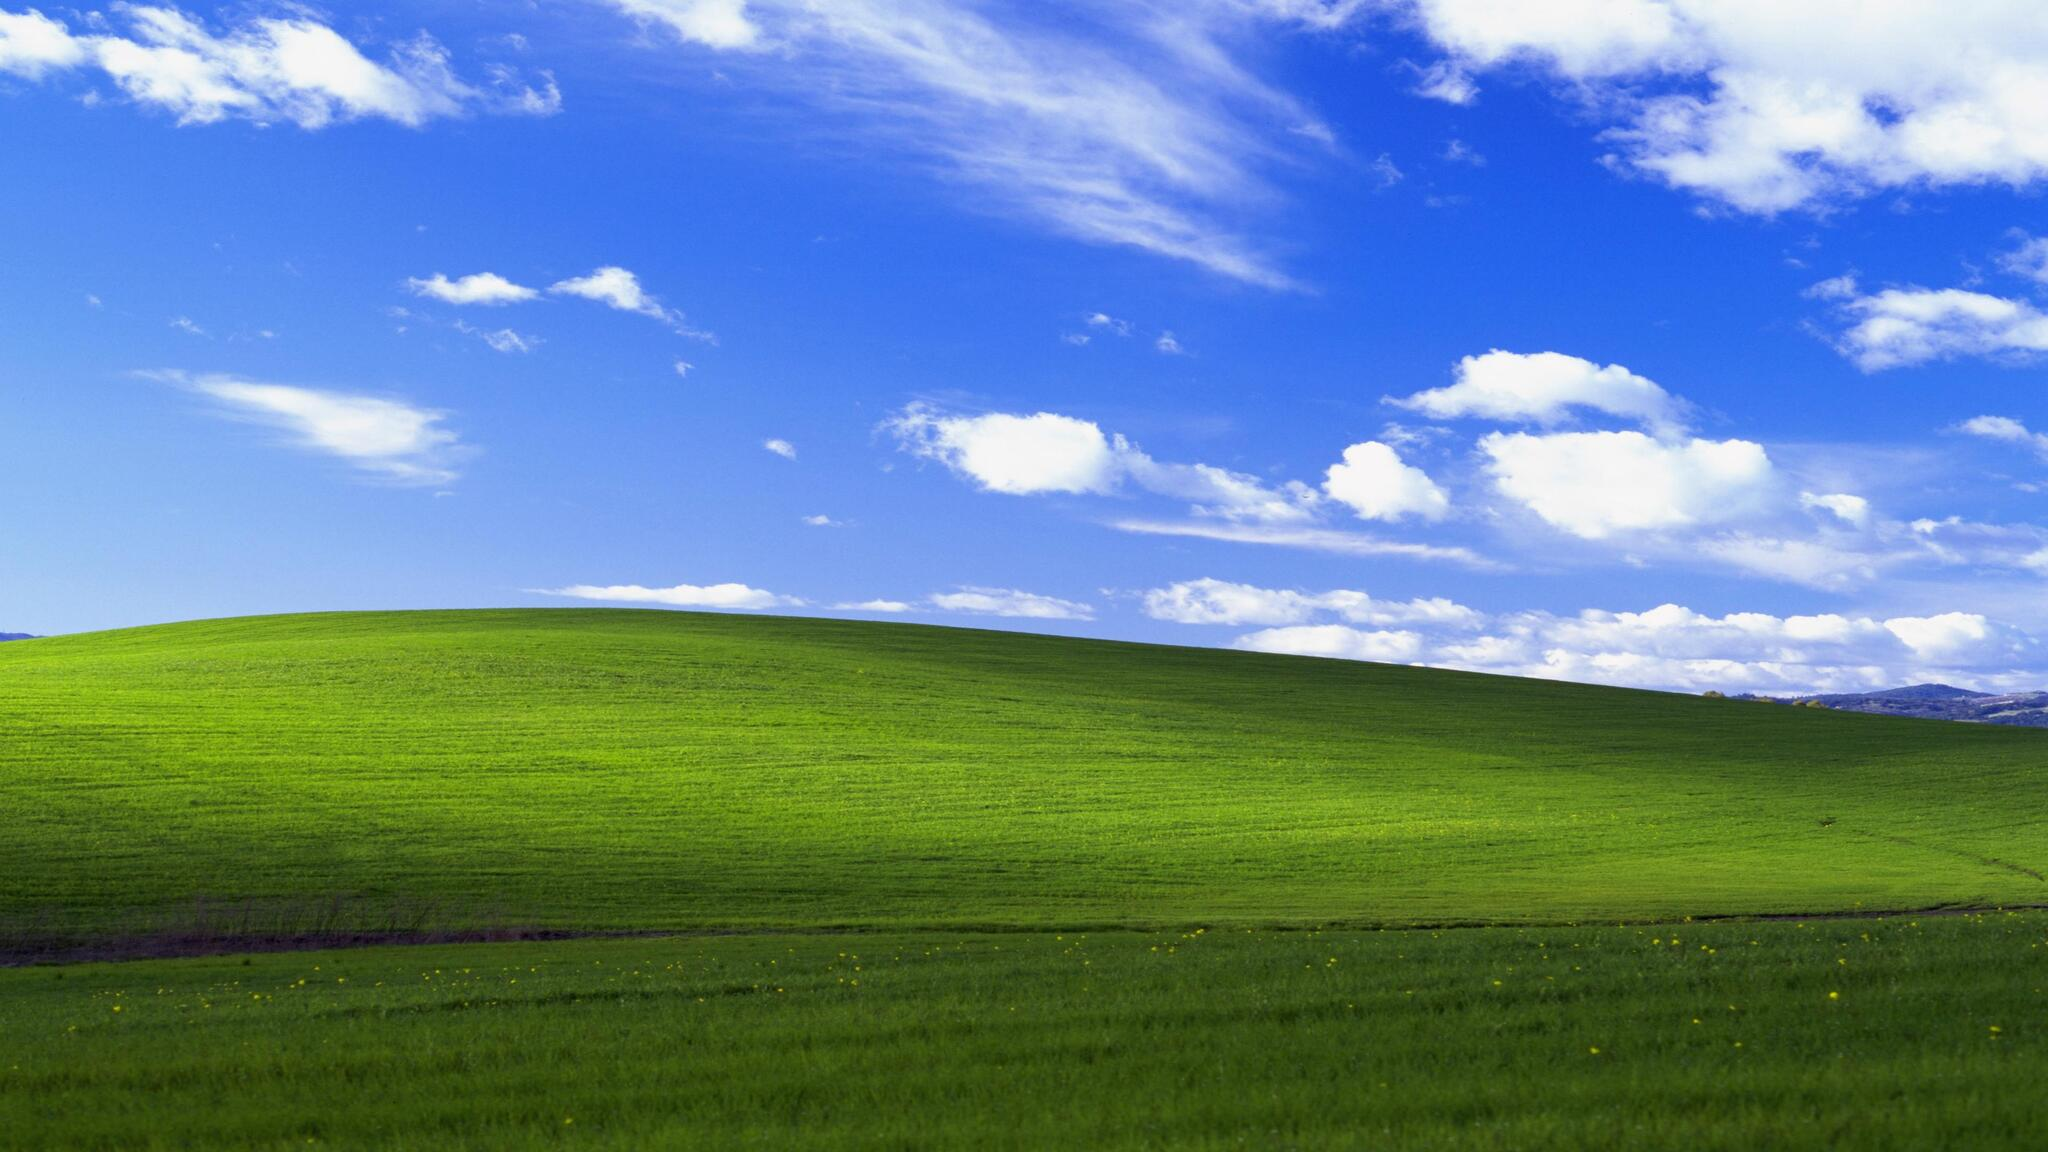 2048x1152 Windows Xp Bliss 4k 2048x1152 Resolution Hd 4k